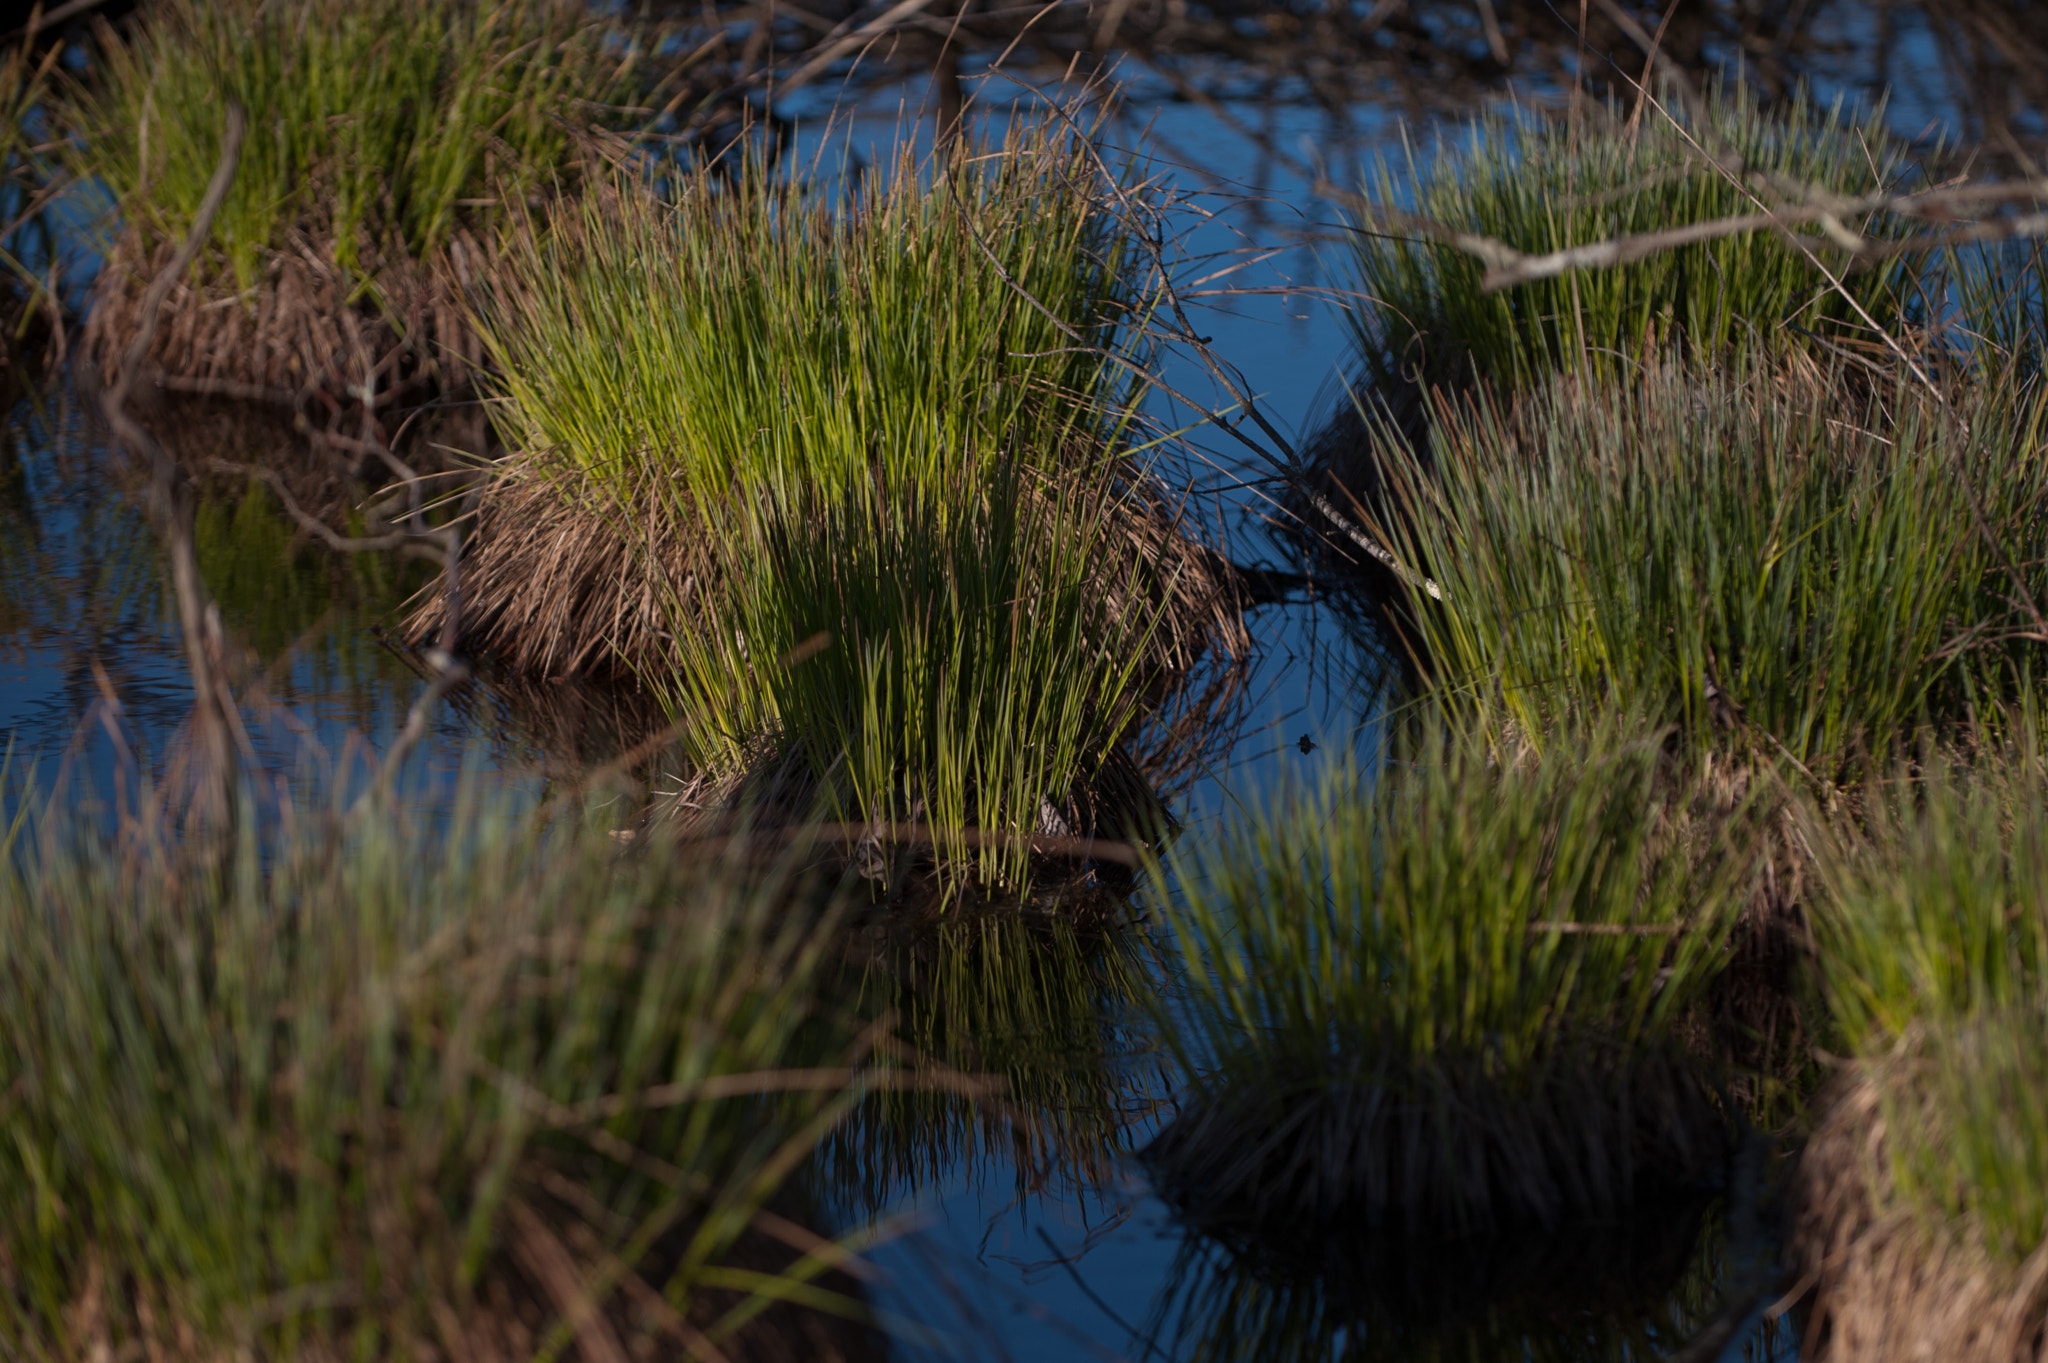 Photograph Wet grass by Marilyn Sonnie on 500px